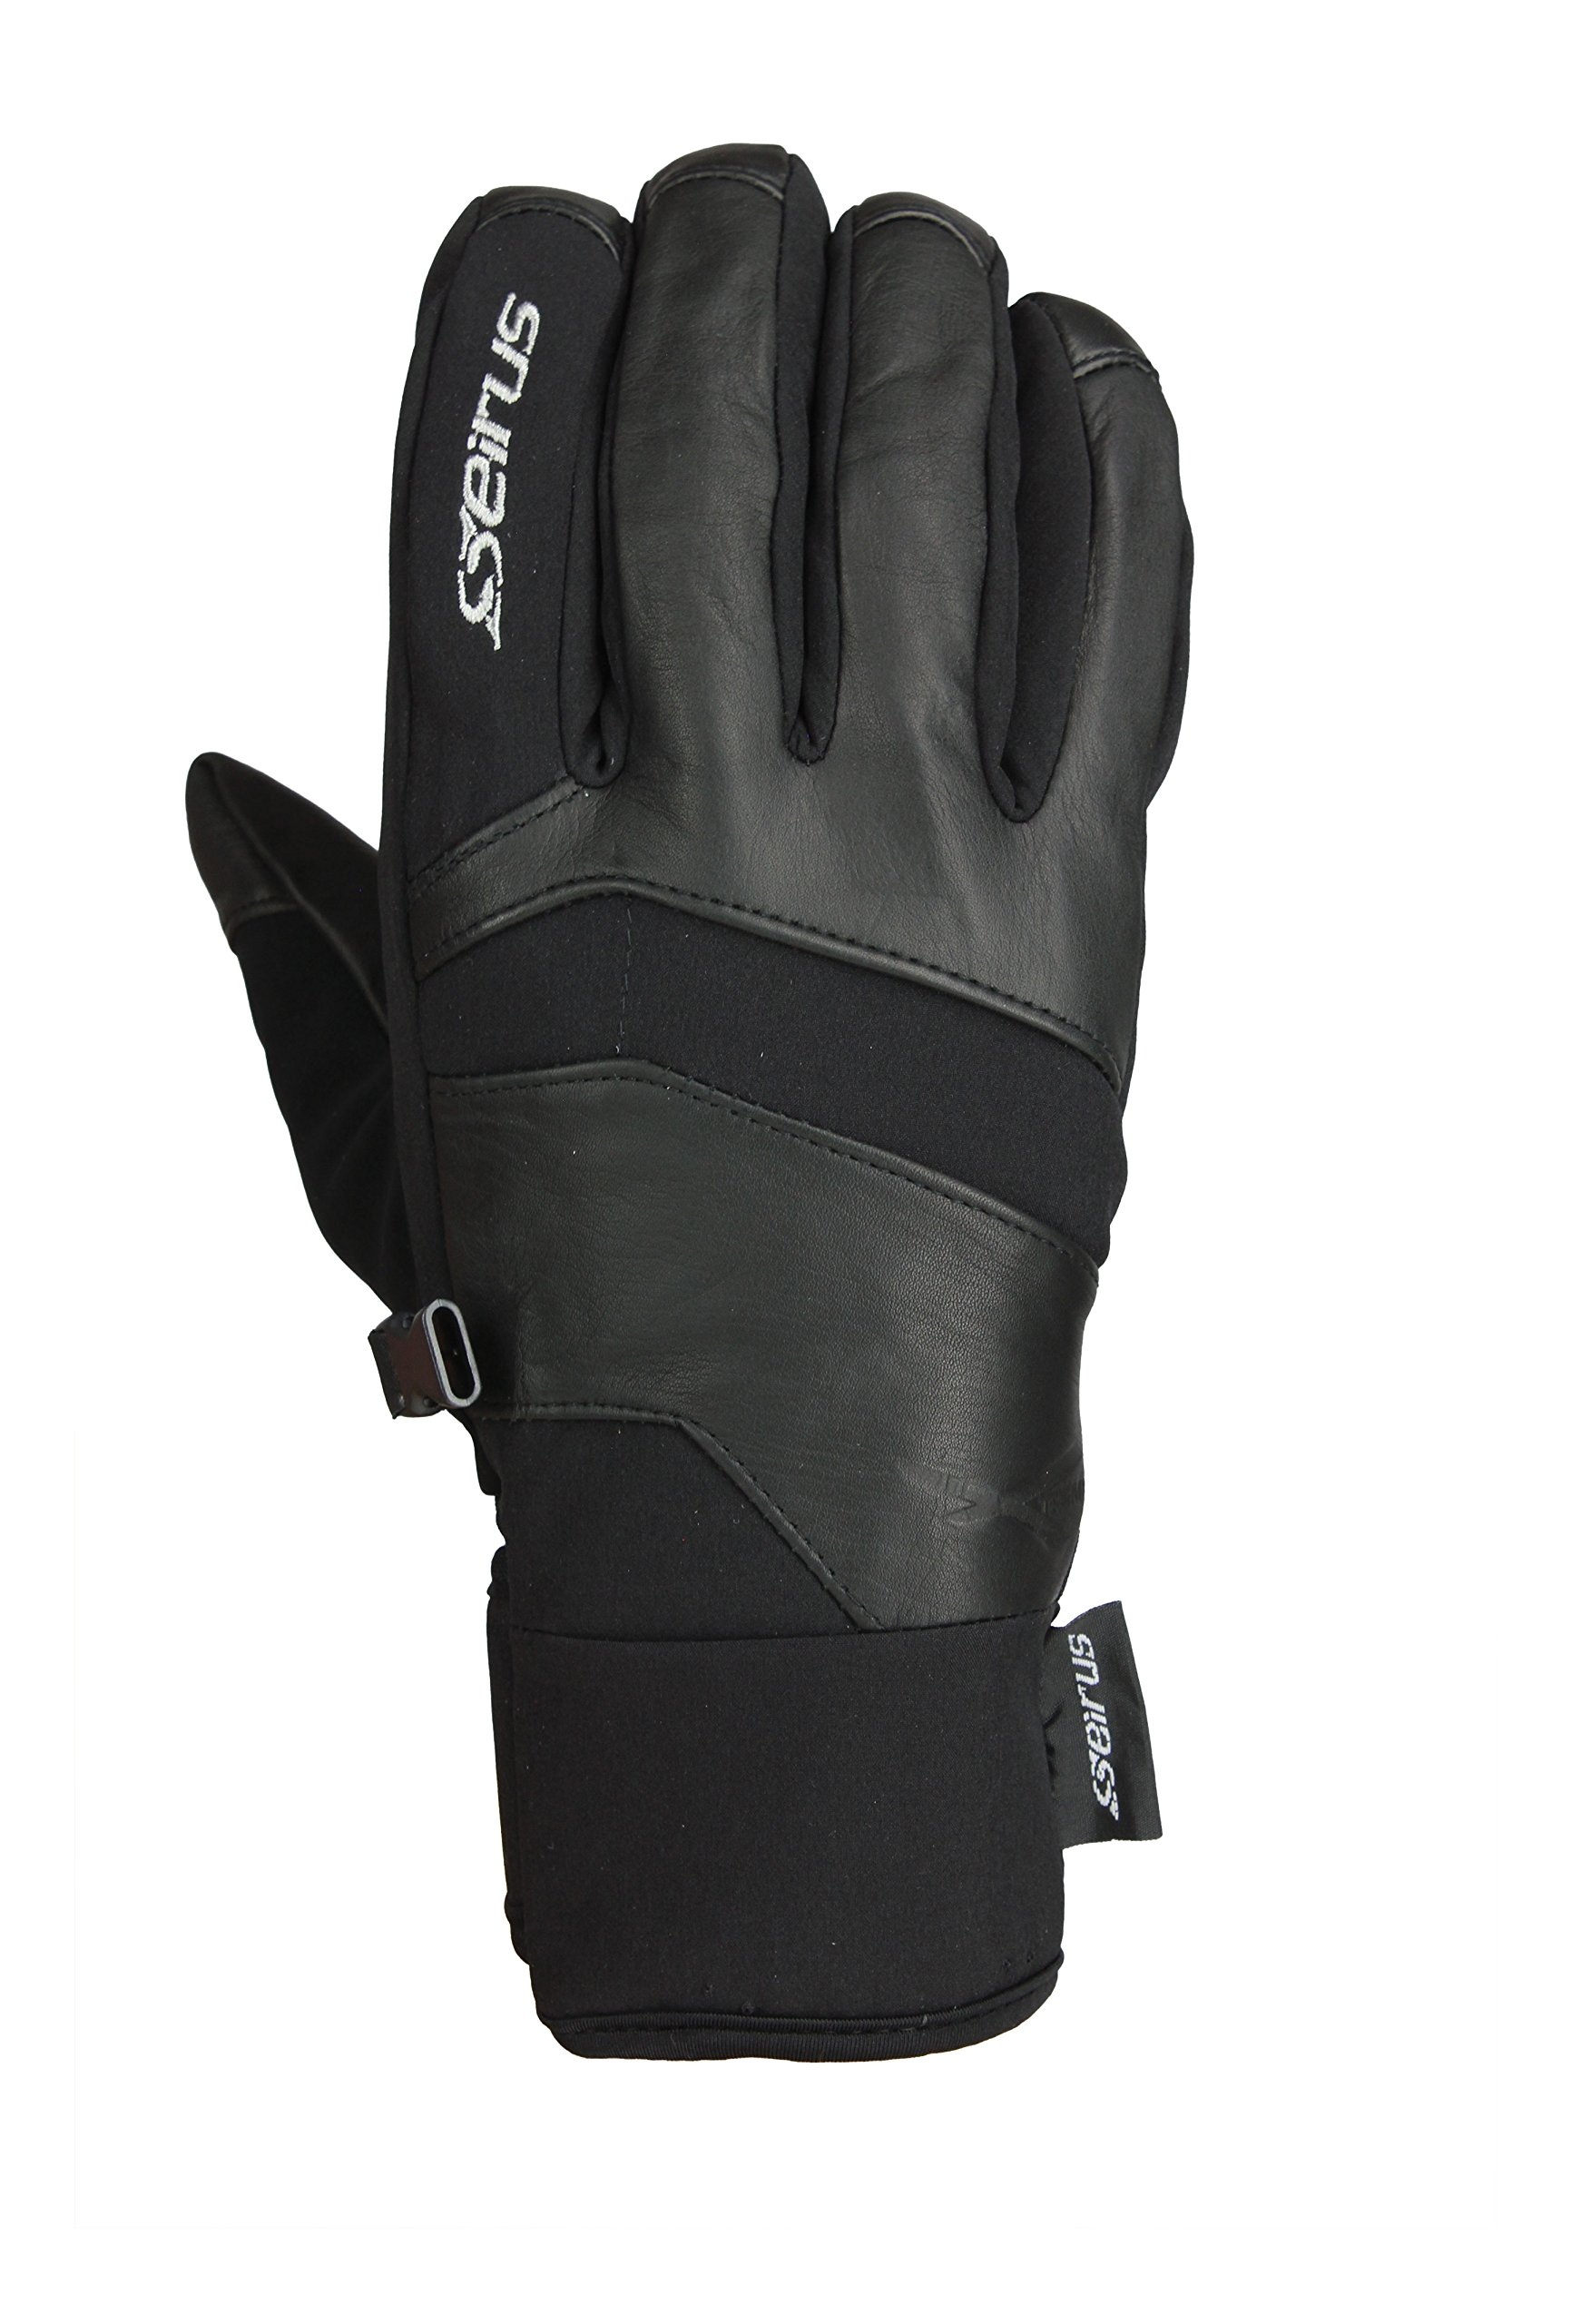 Seirus Innovation Xtreme Edge All Weather Glove,Large,Black